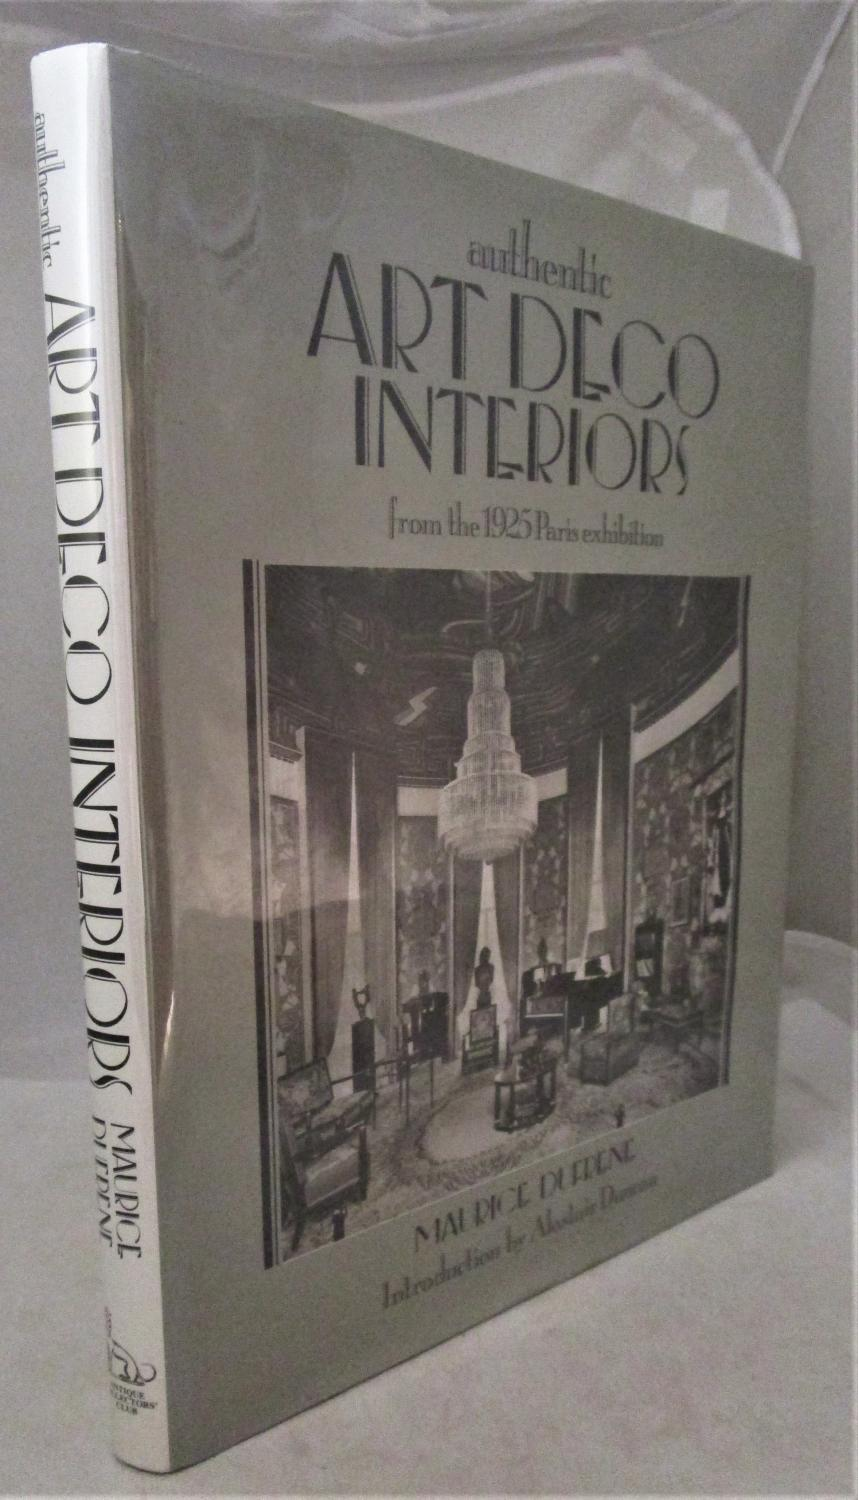 . Authentic Art Deco Interiors from the 1925 Paris Exhibition by